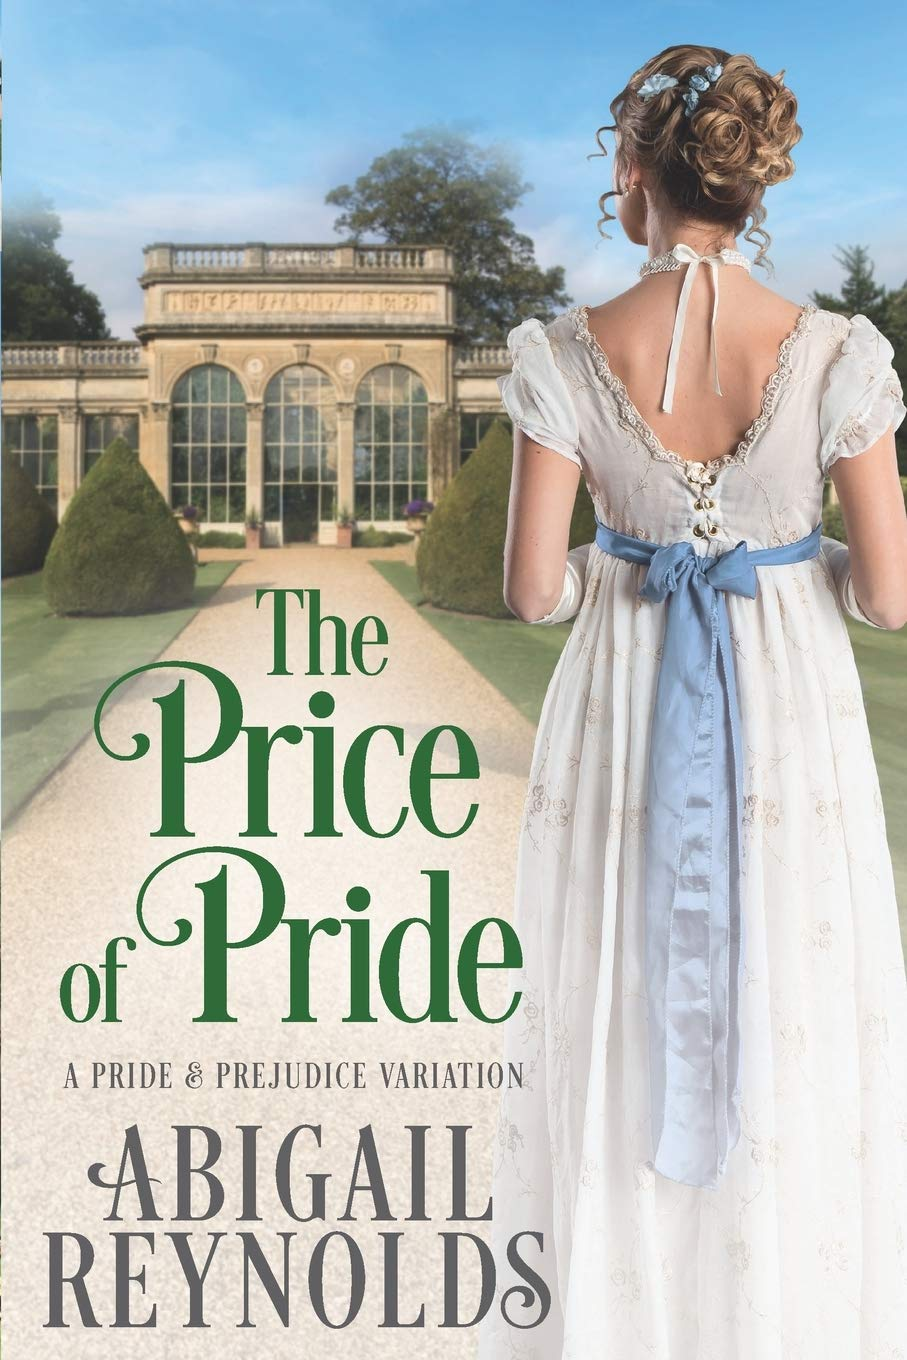 The Price of Pride by Abigail Reynolds 2020